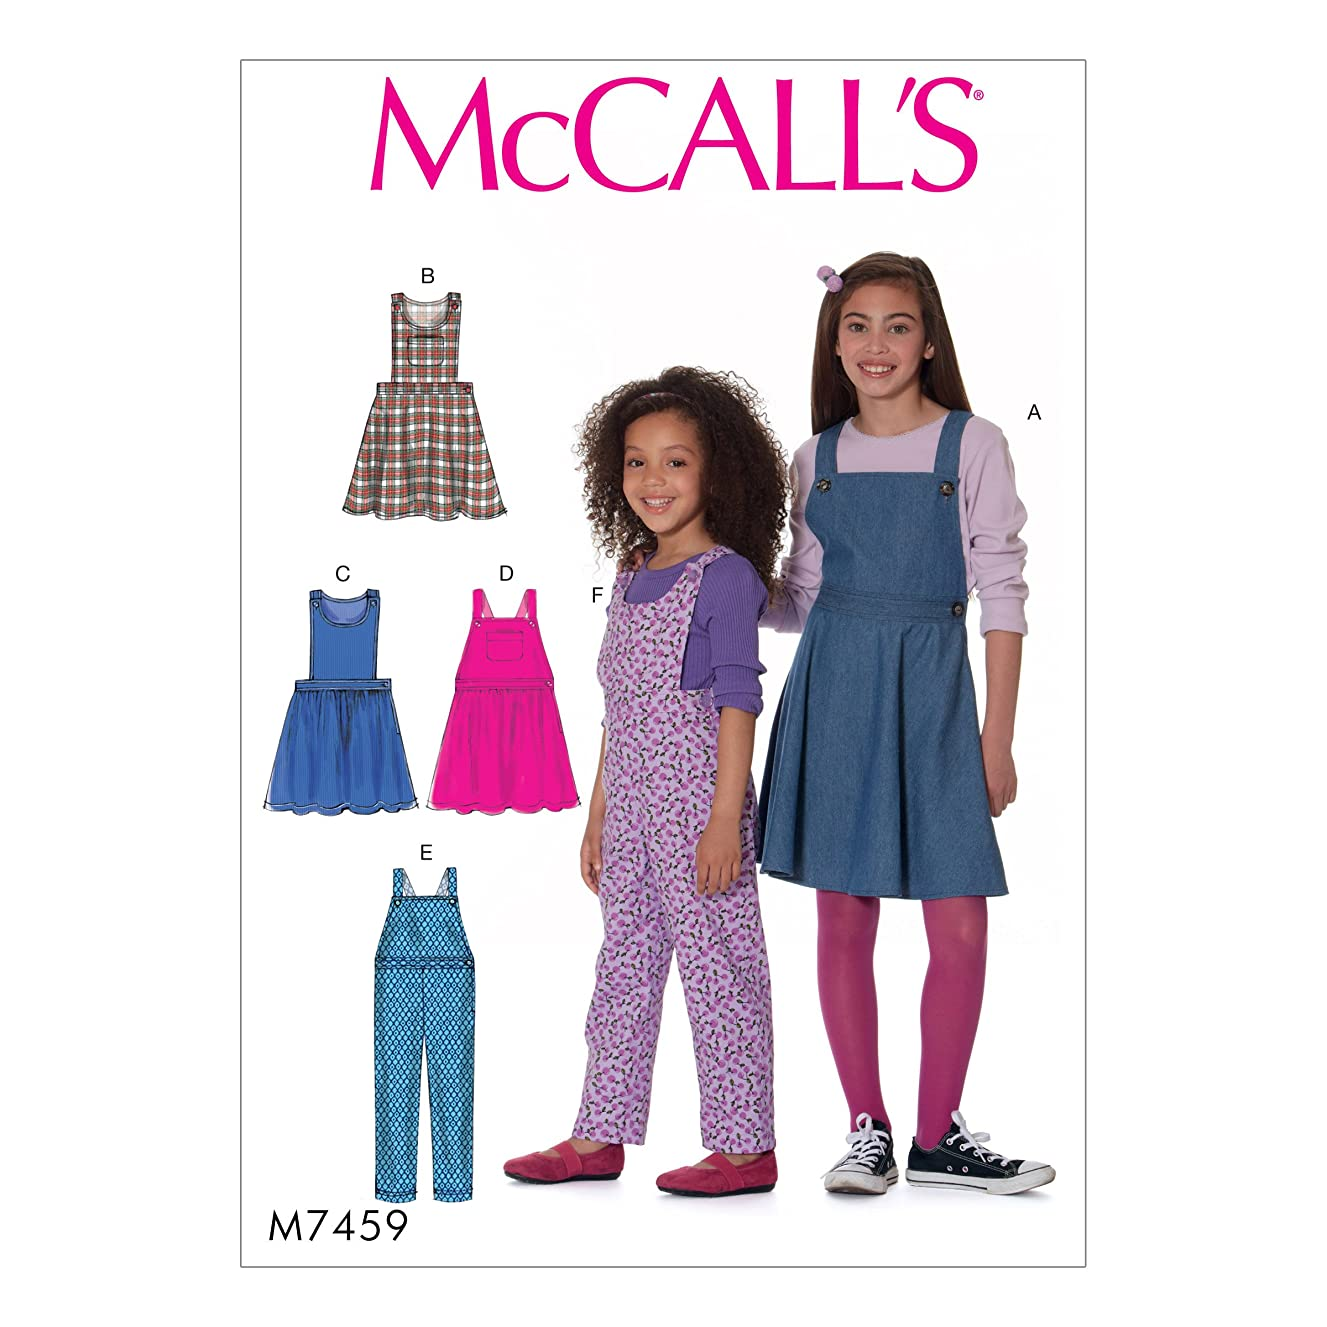 McCall's Patterns M7459CHJ Children's/Girls' Jumpers and Overalls